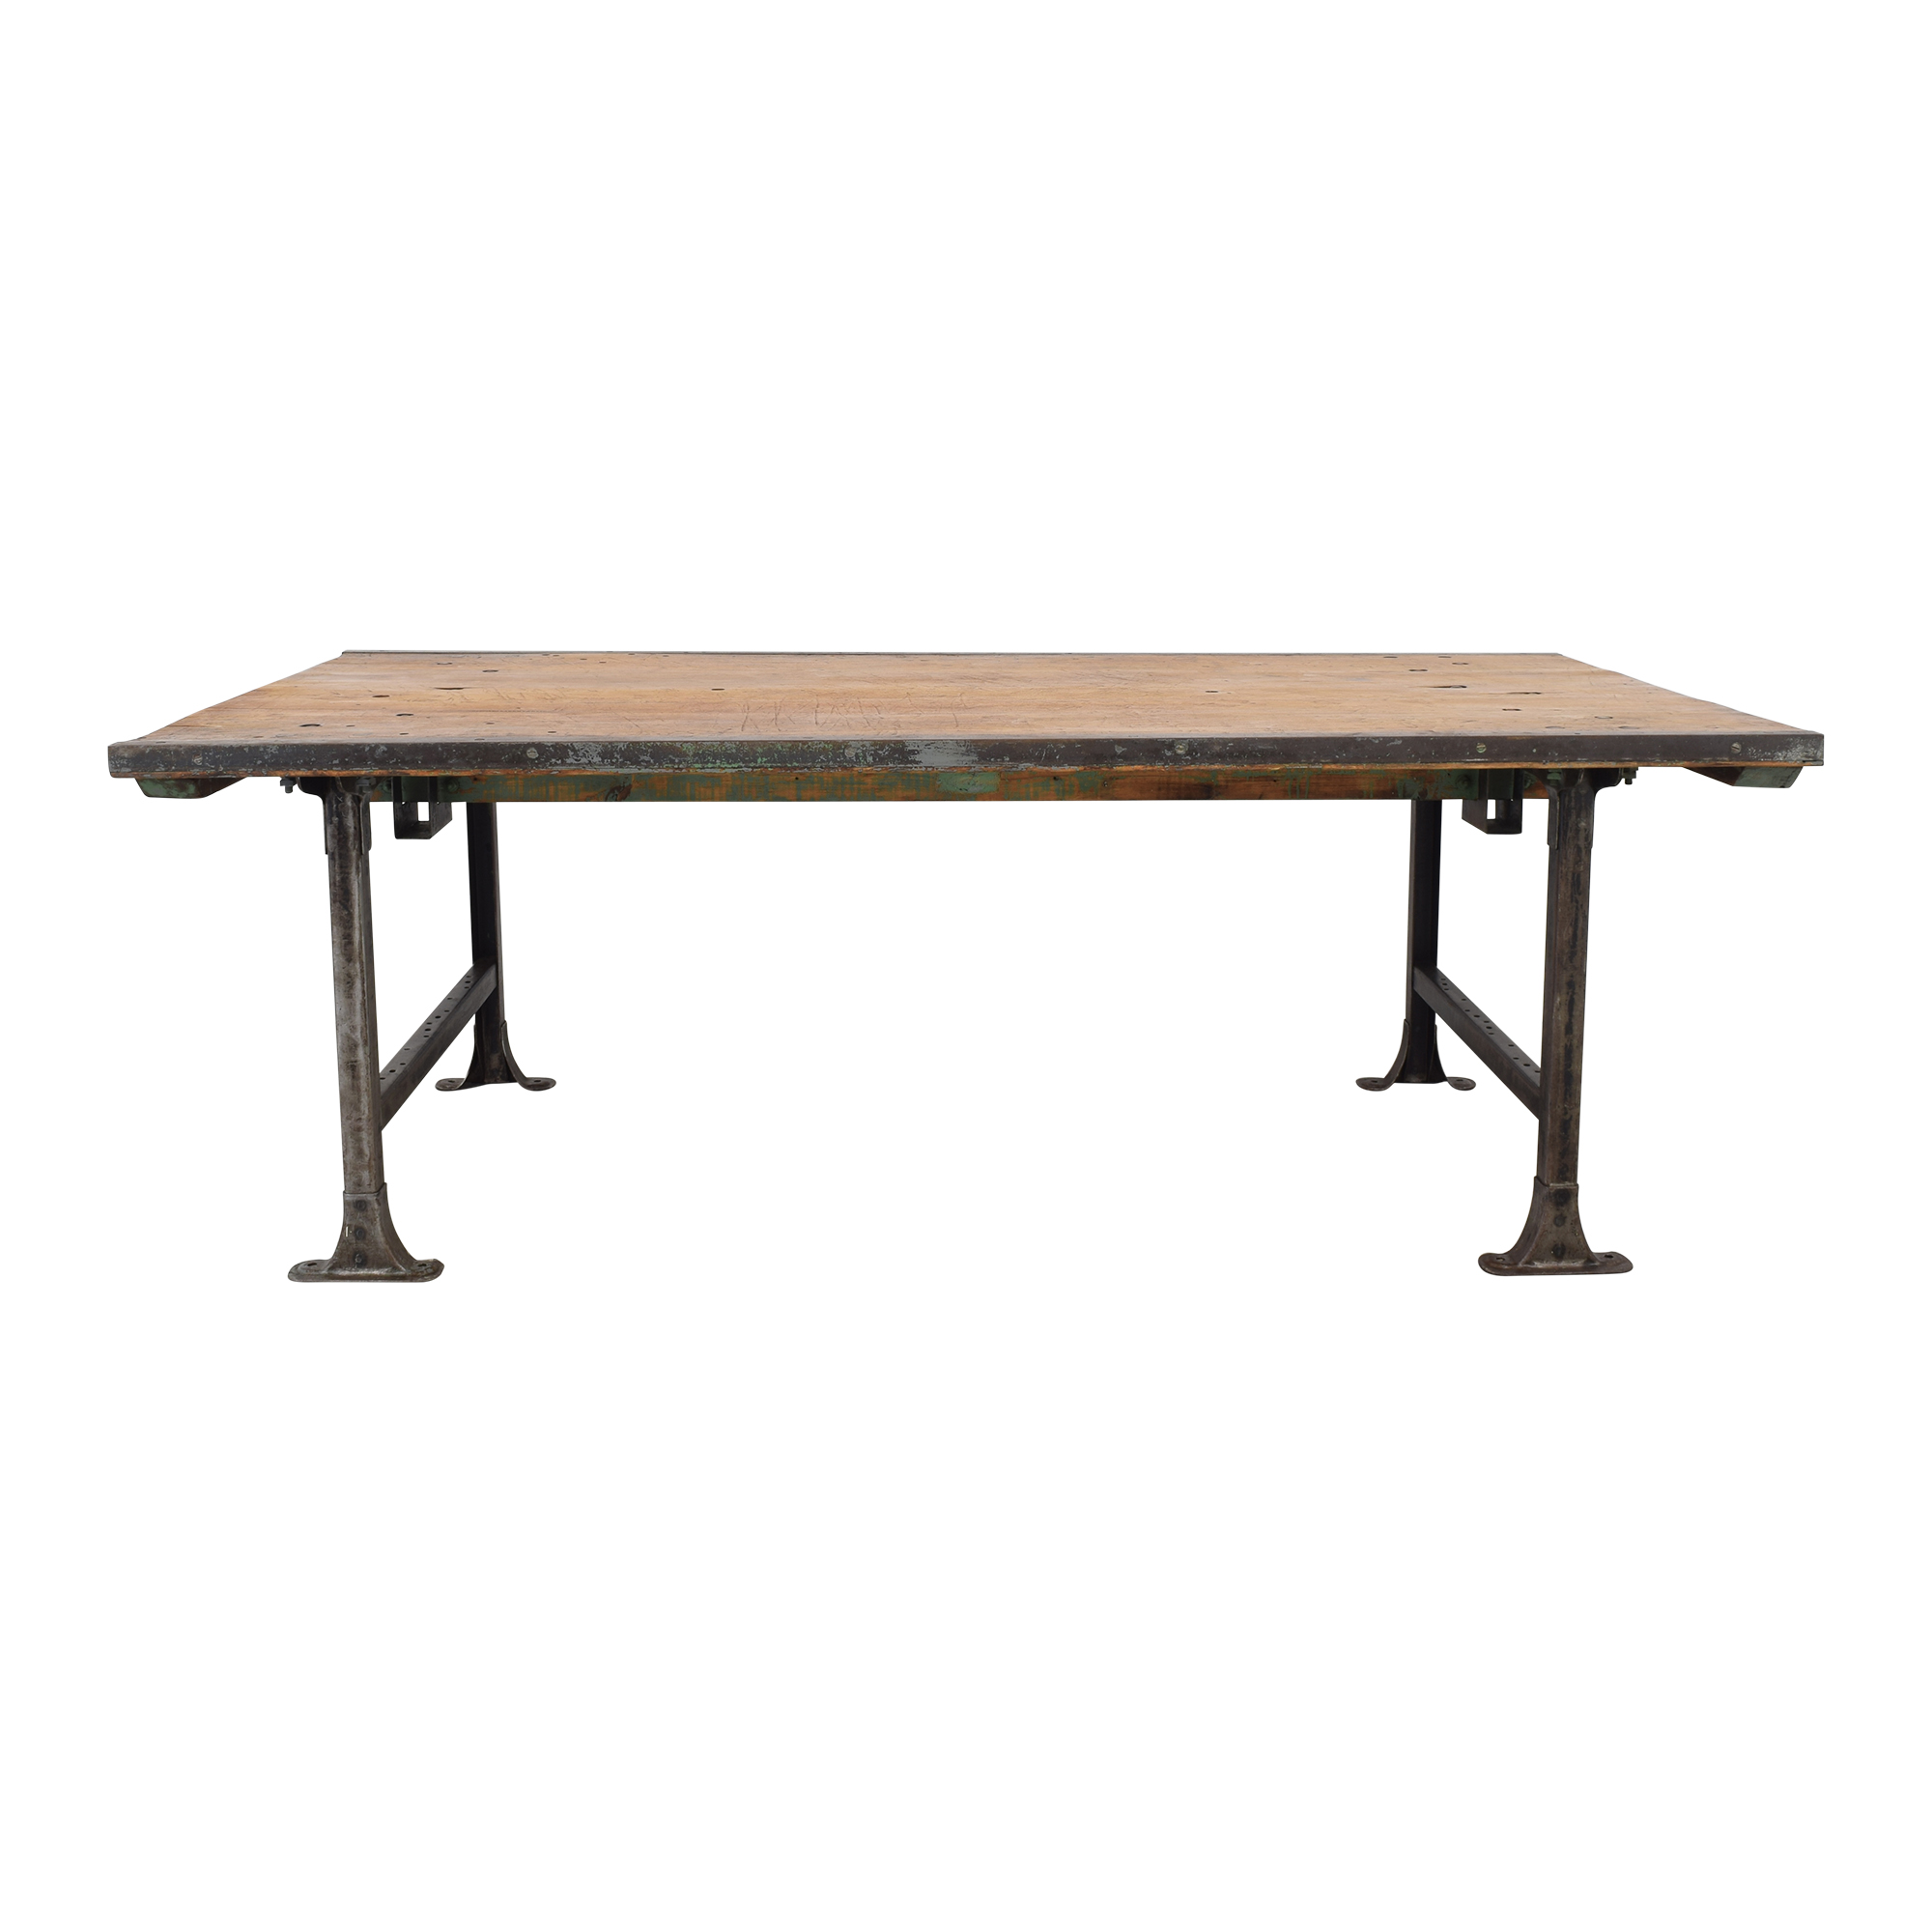 ABC Carpet & Home Vintage Industrial Dining Table ABC Carpet & Home